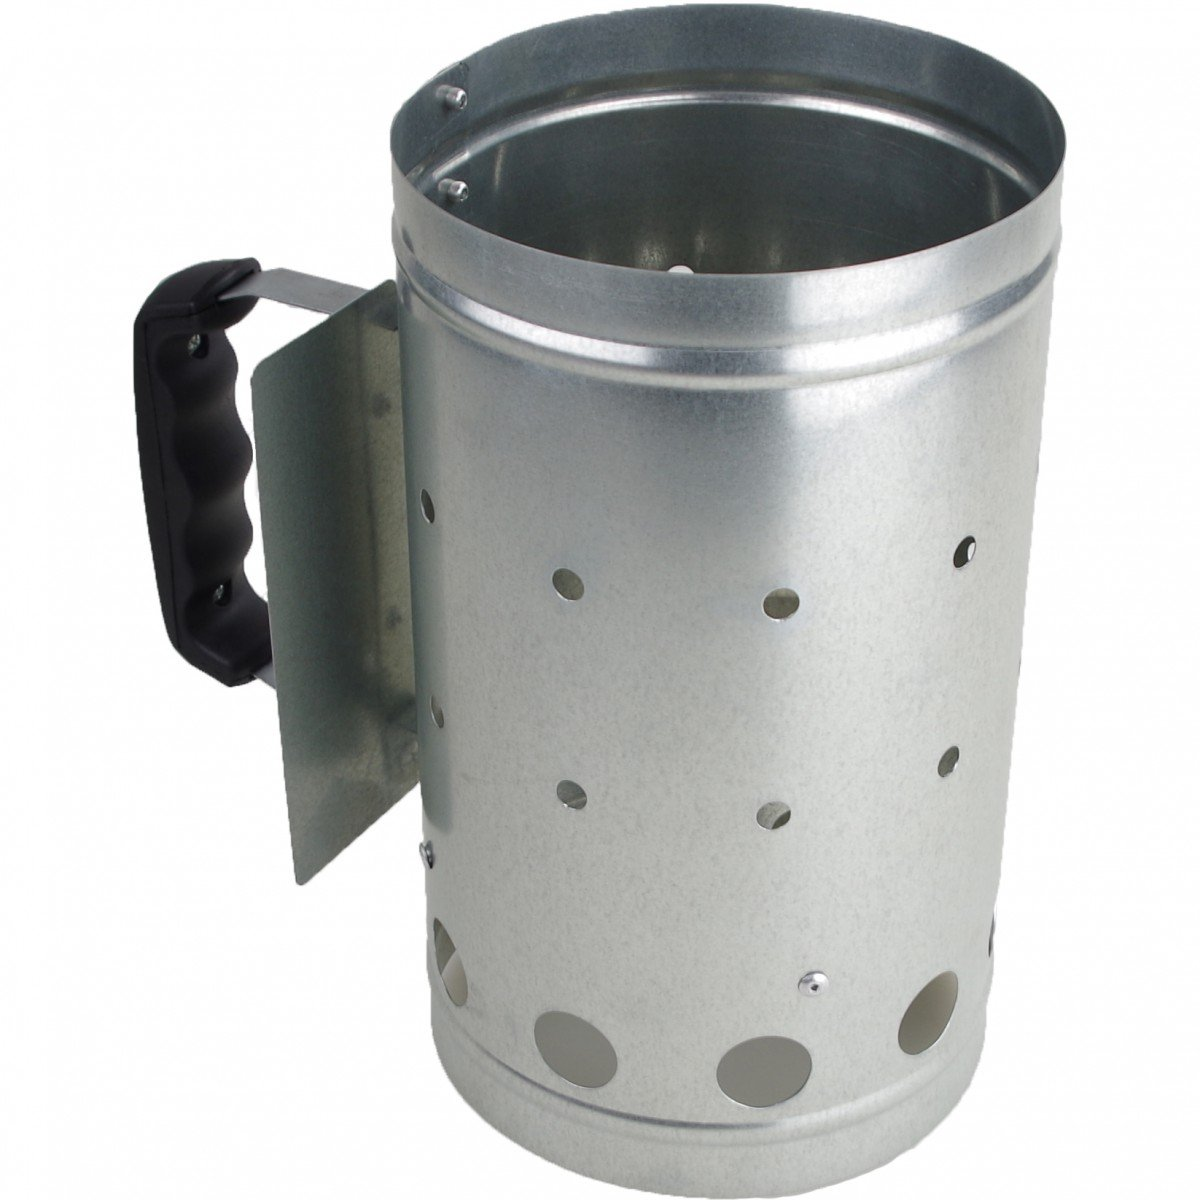 Barbecue BBQ Chimney Starter for Charcoal Briquettes Lighter Westerholdt GmbH